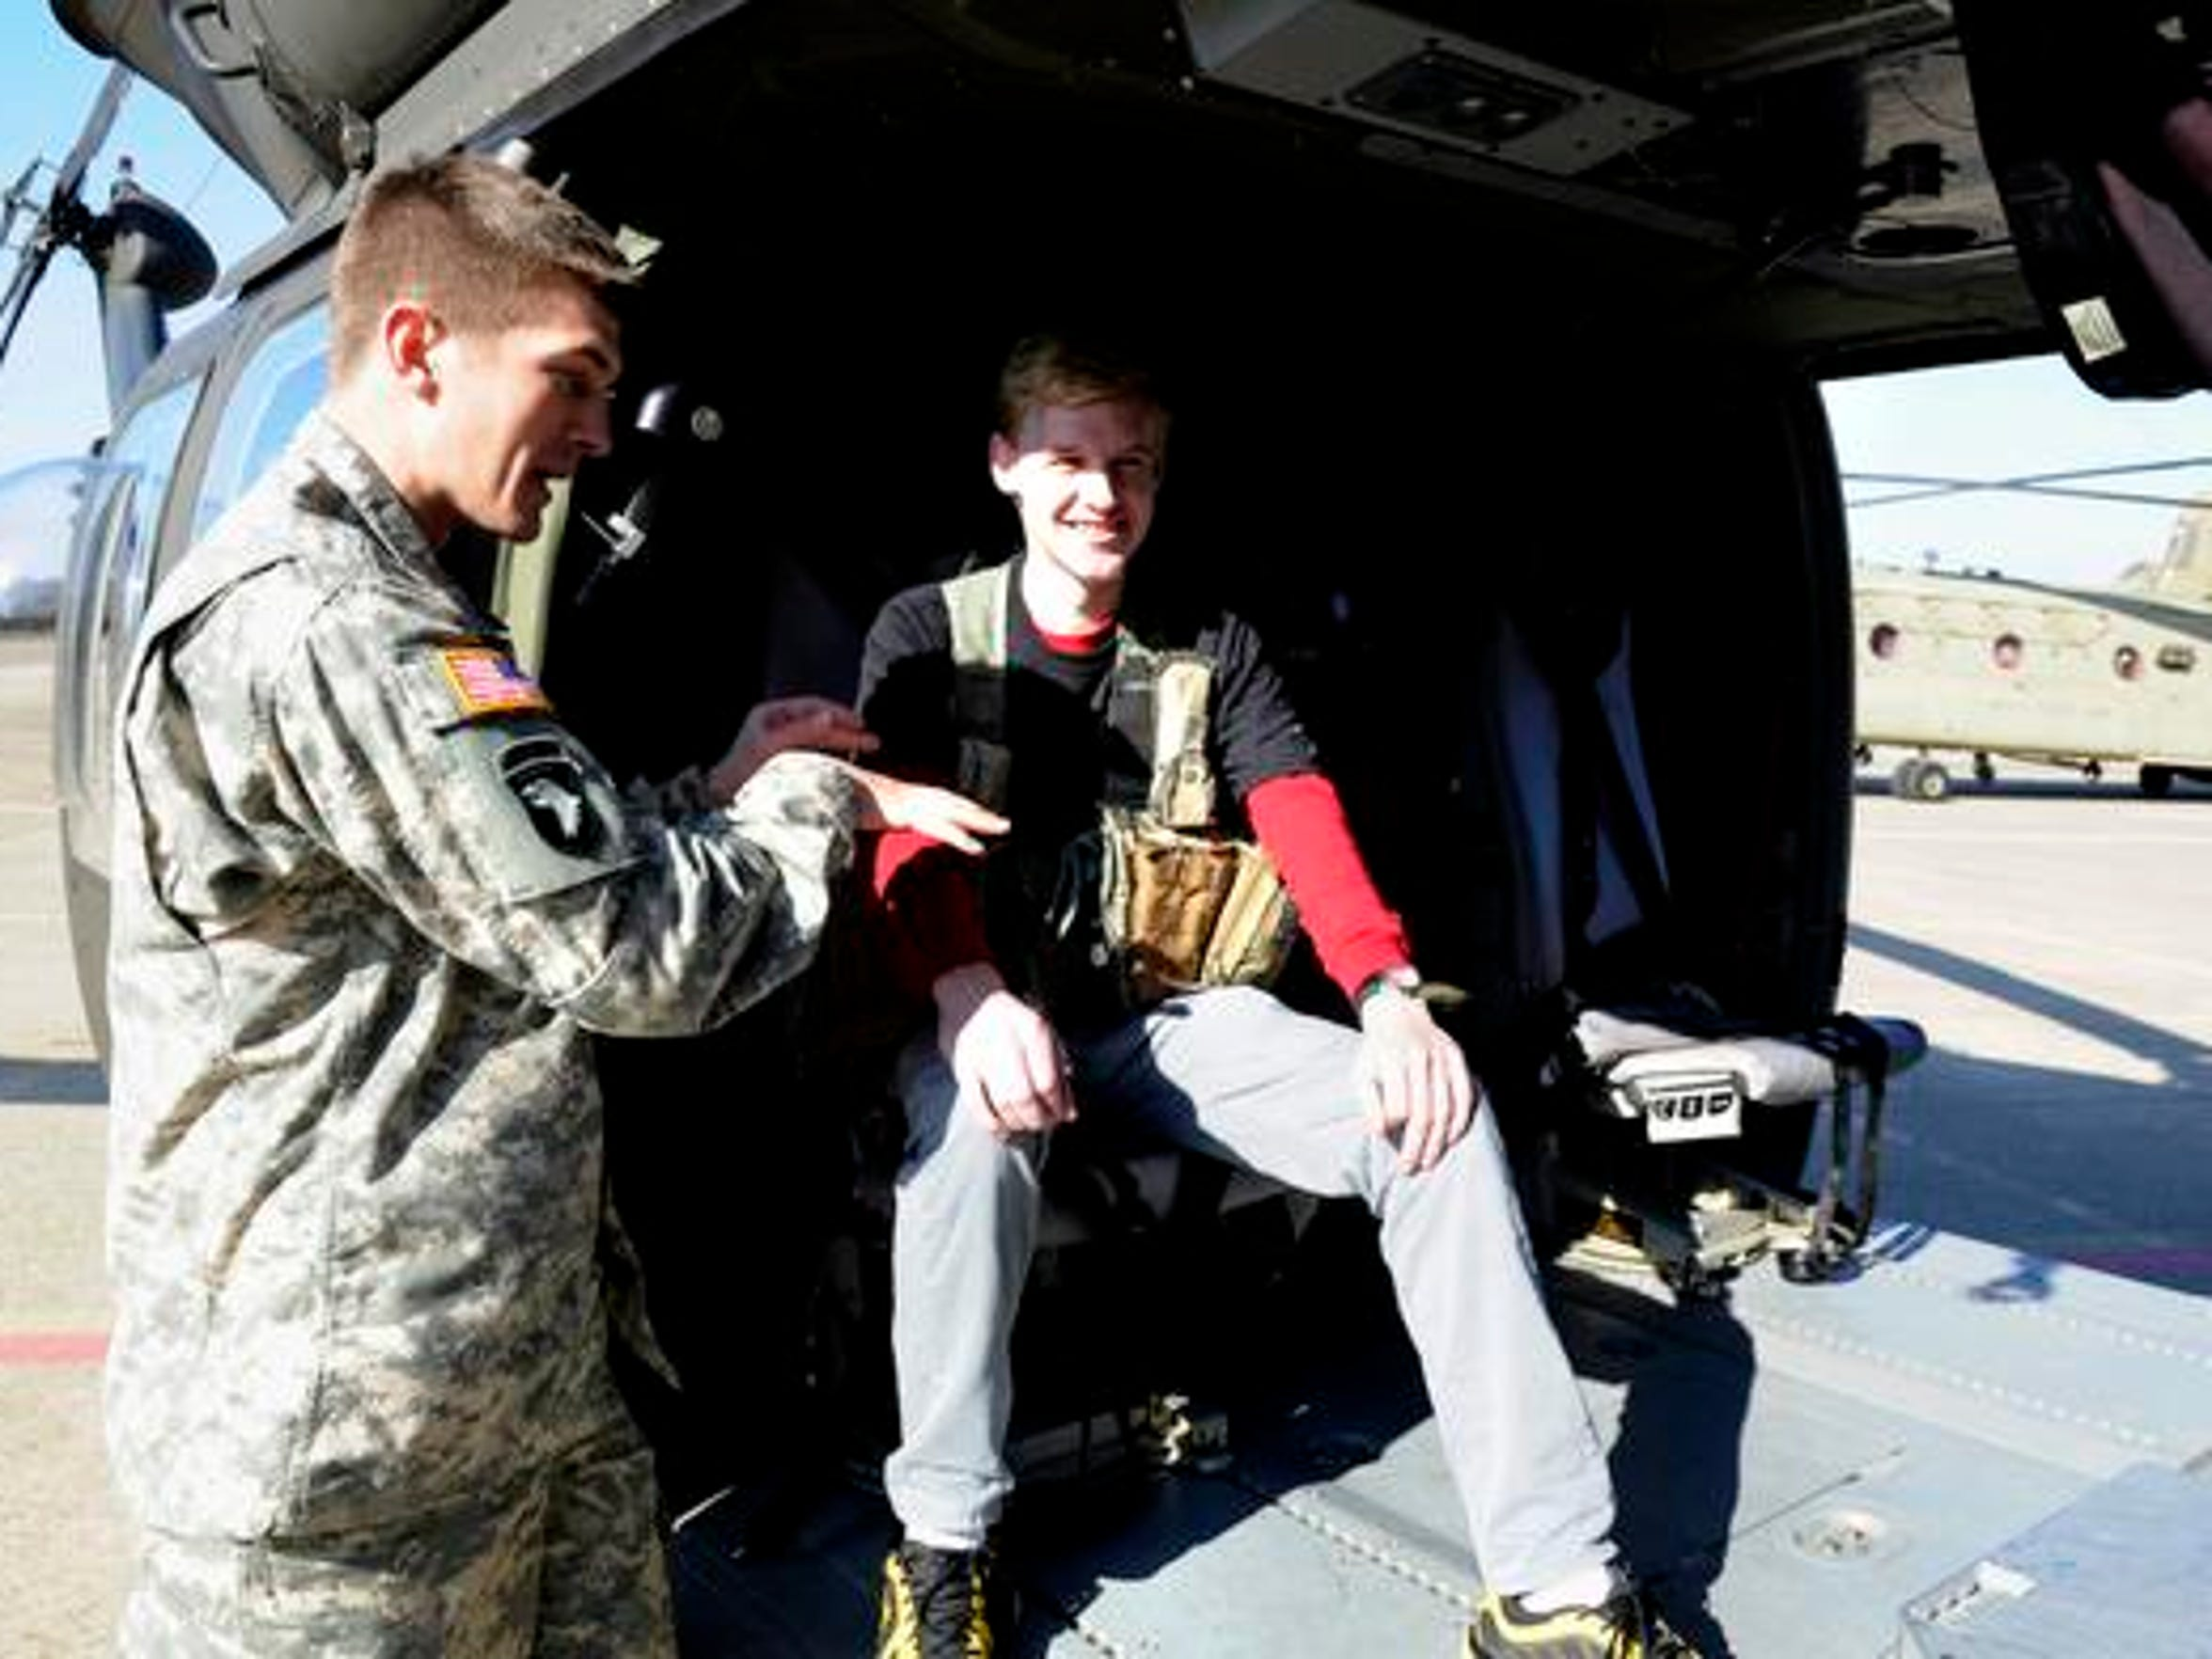 Army medic Andrew Six gives Jack Zimmerman a inside tour of a Black Hawk helicopter during Zimmerman's Make a Wish request which 2nd Squadron, 17th Cavalry Regiment, 101st Combat Aviation Brigade helped facilitate at Fort Campbell on Dec. 13, 2014.